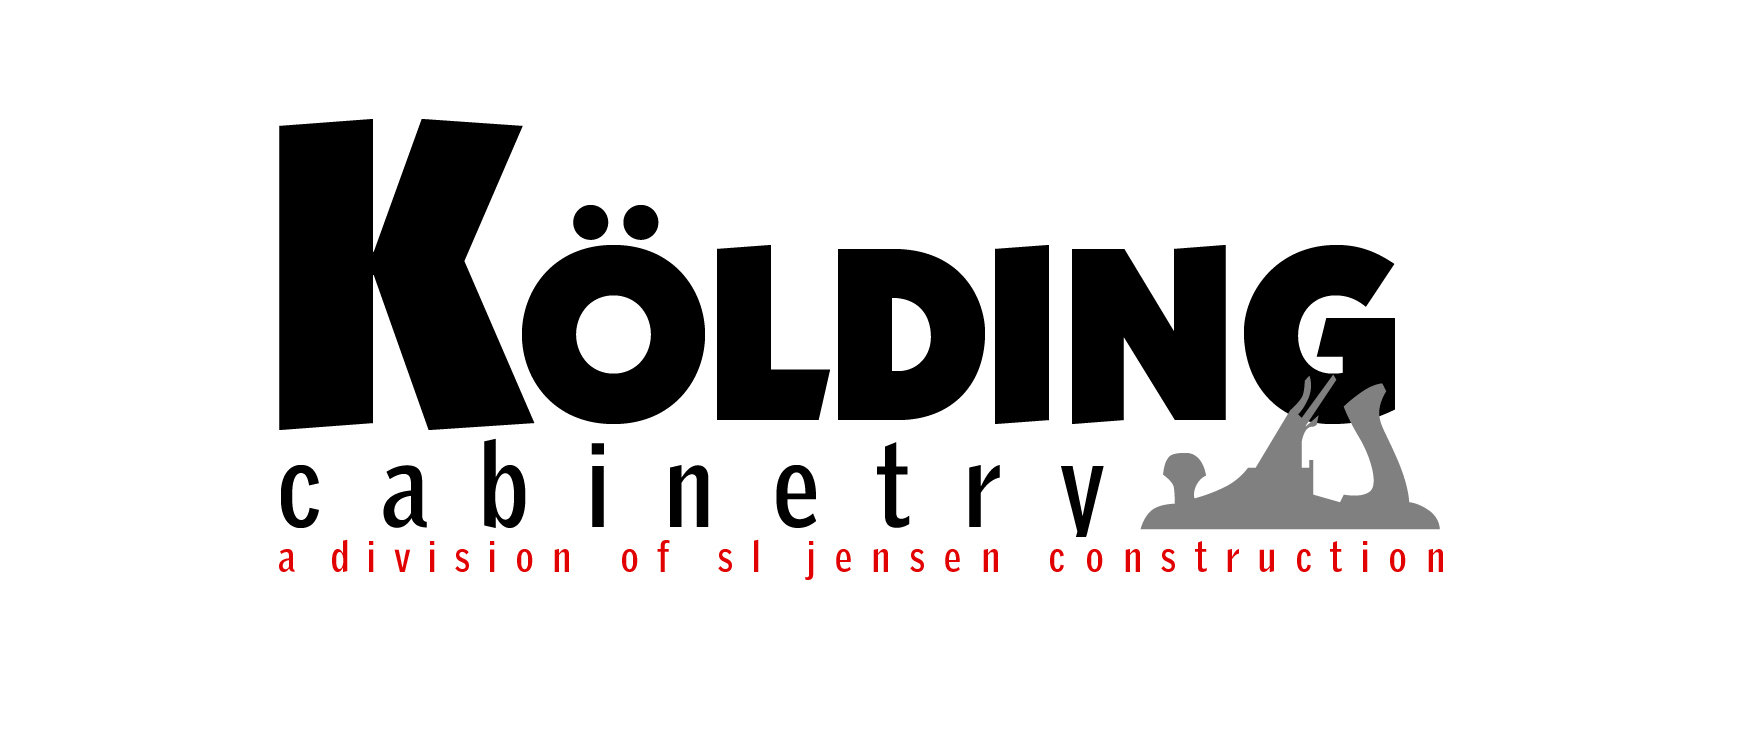 Kolding Cabinetry